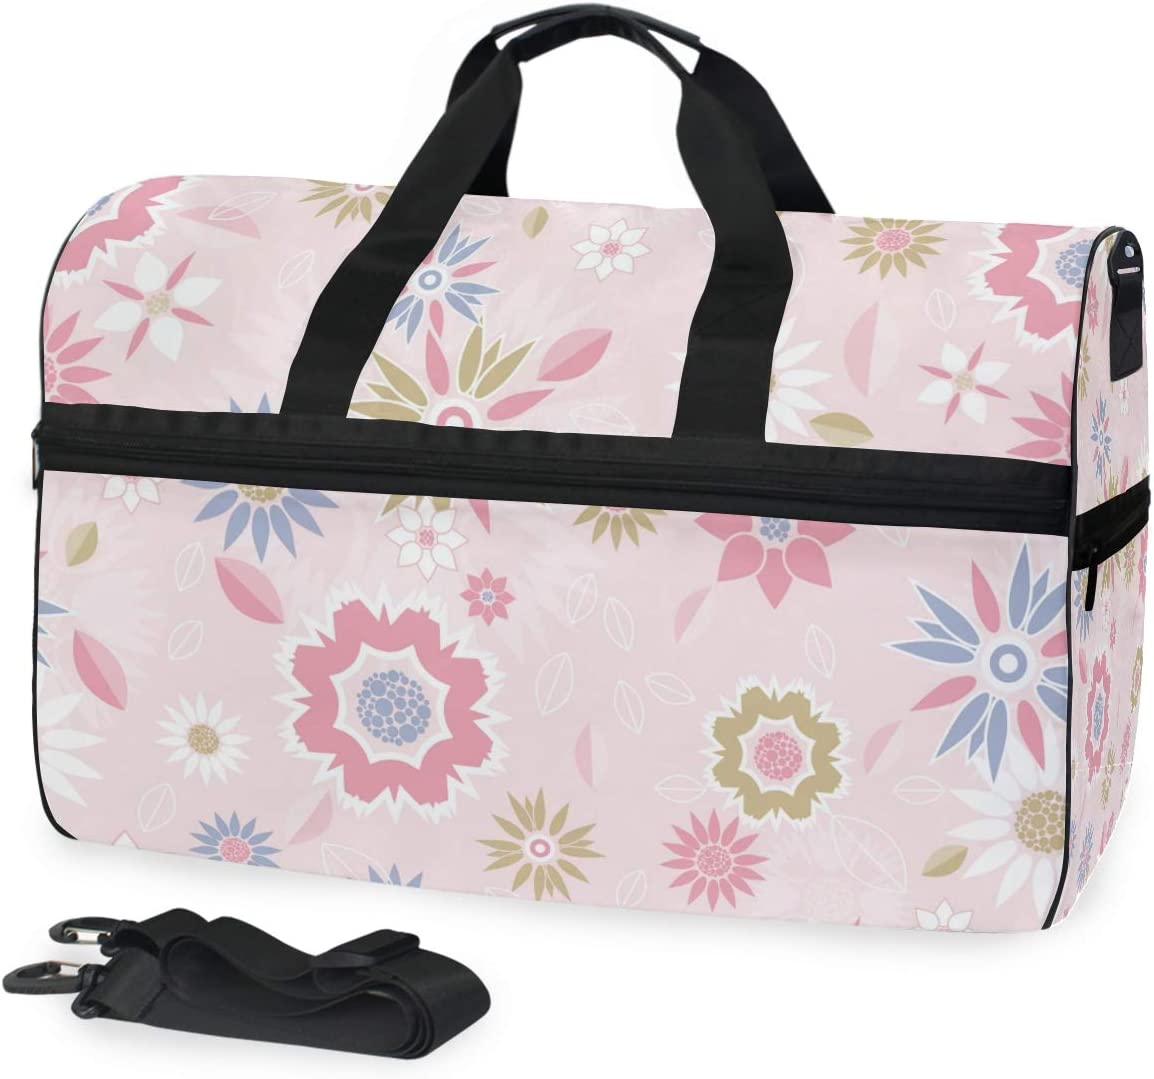 Travel Duffels Floral Pink Duffle Bag Luggage Sports Gym for Women /& Men